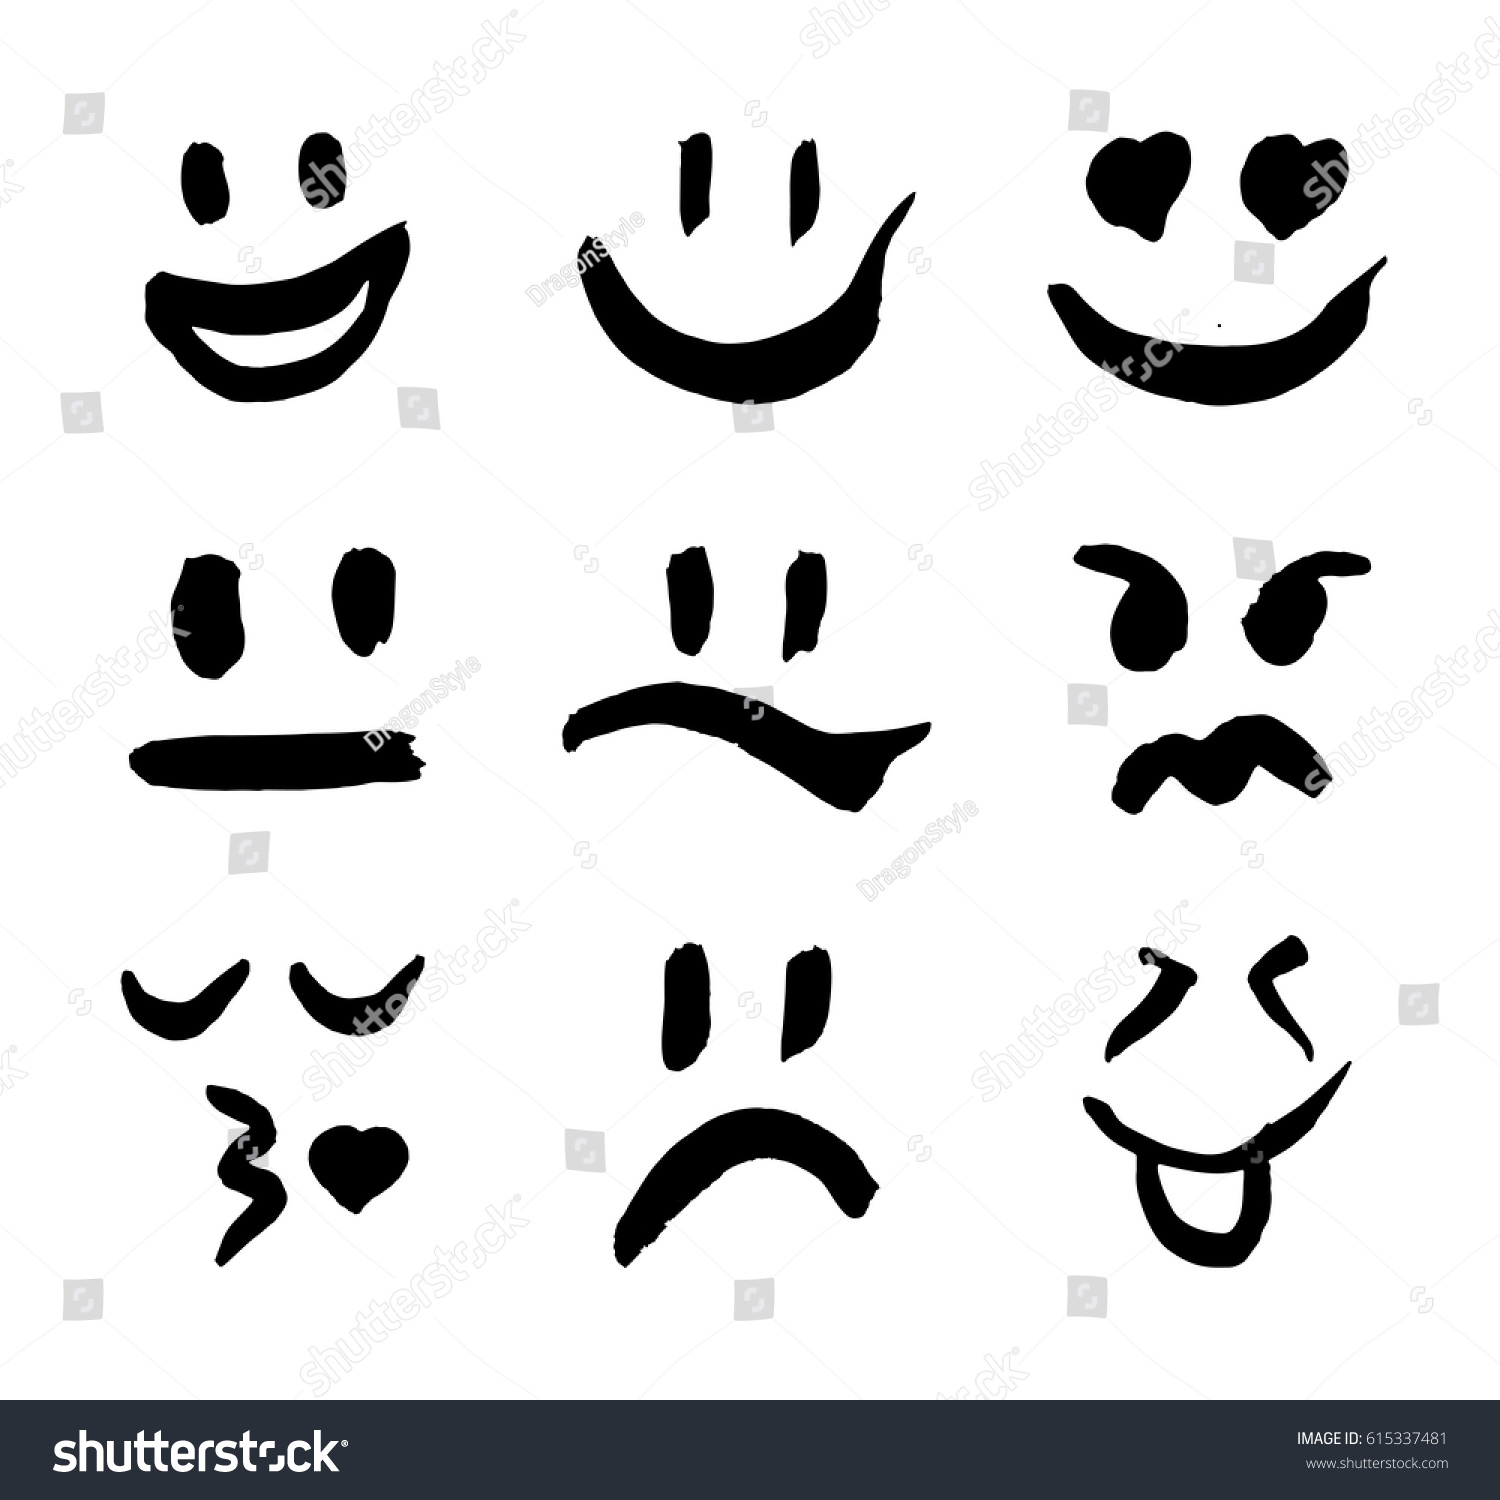 Set emoticons decoration your projects collection stock vector set of emoticons for decoration of your projects collection of unique hand drawn symbols biocorpaavc Gallery